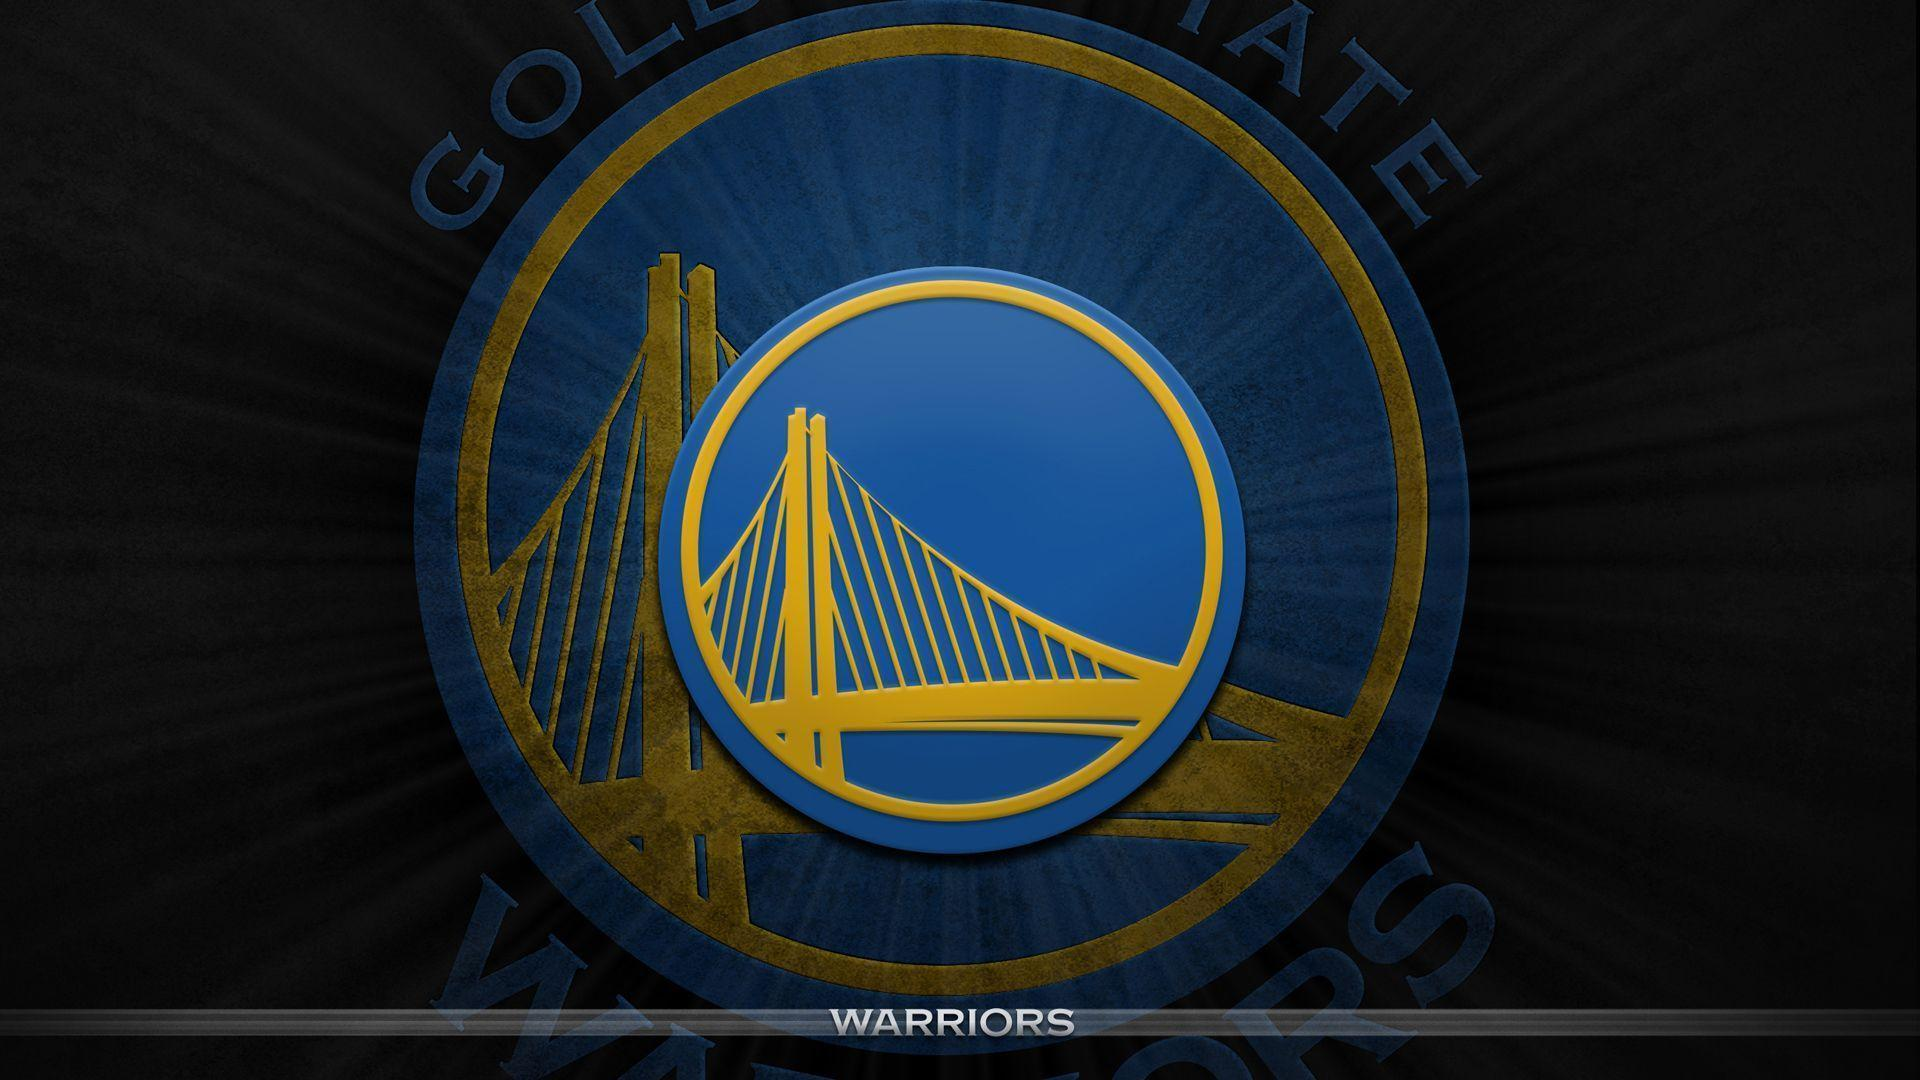 Golden State Warriors Wallpapers Image Photos Pictures Backgrounds